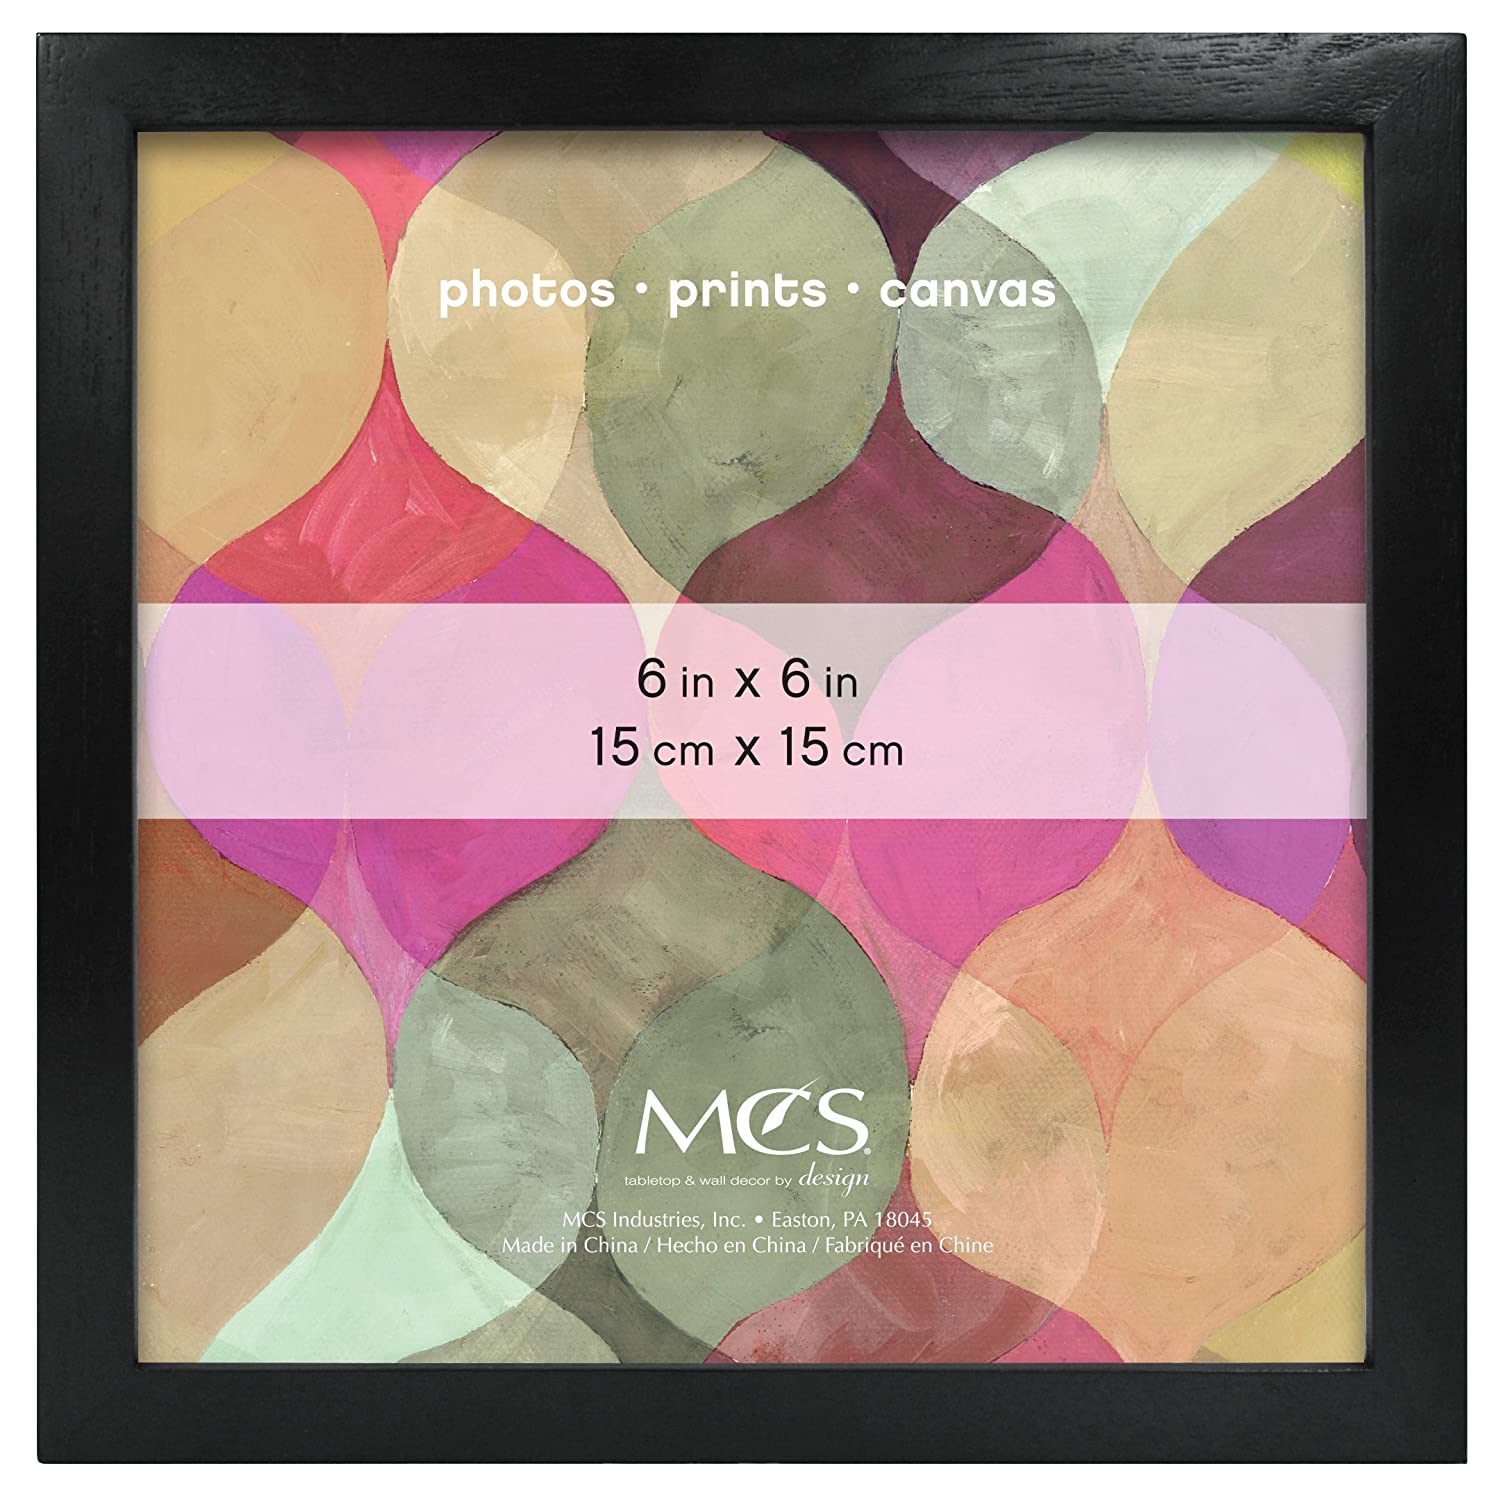 Amazon.com: MCS 6x6 Inch Art Frame, Black (47557): Home & Kitchen